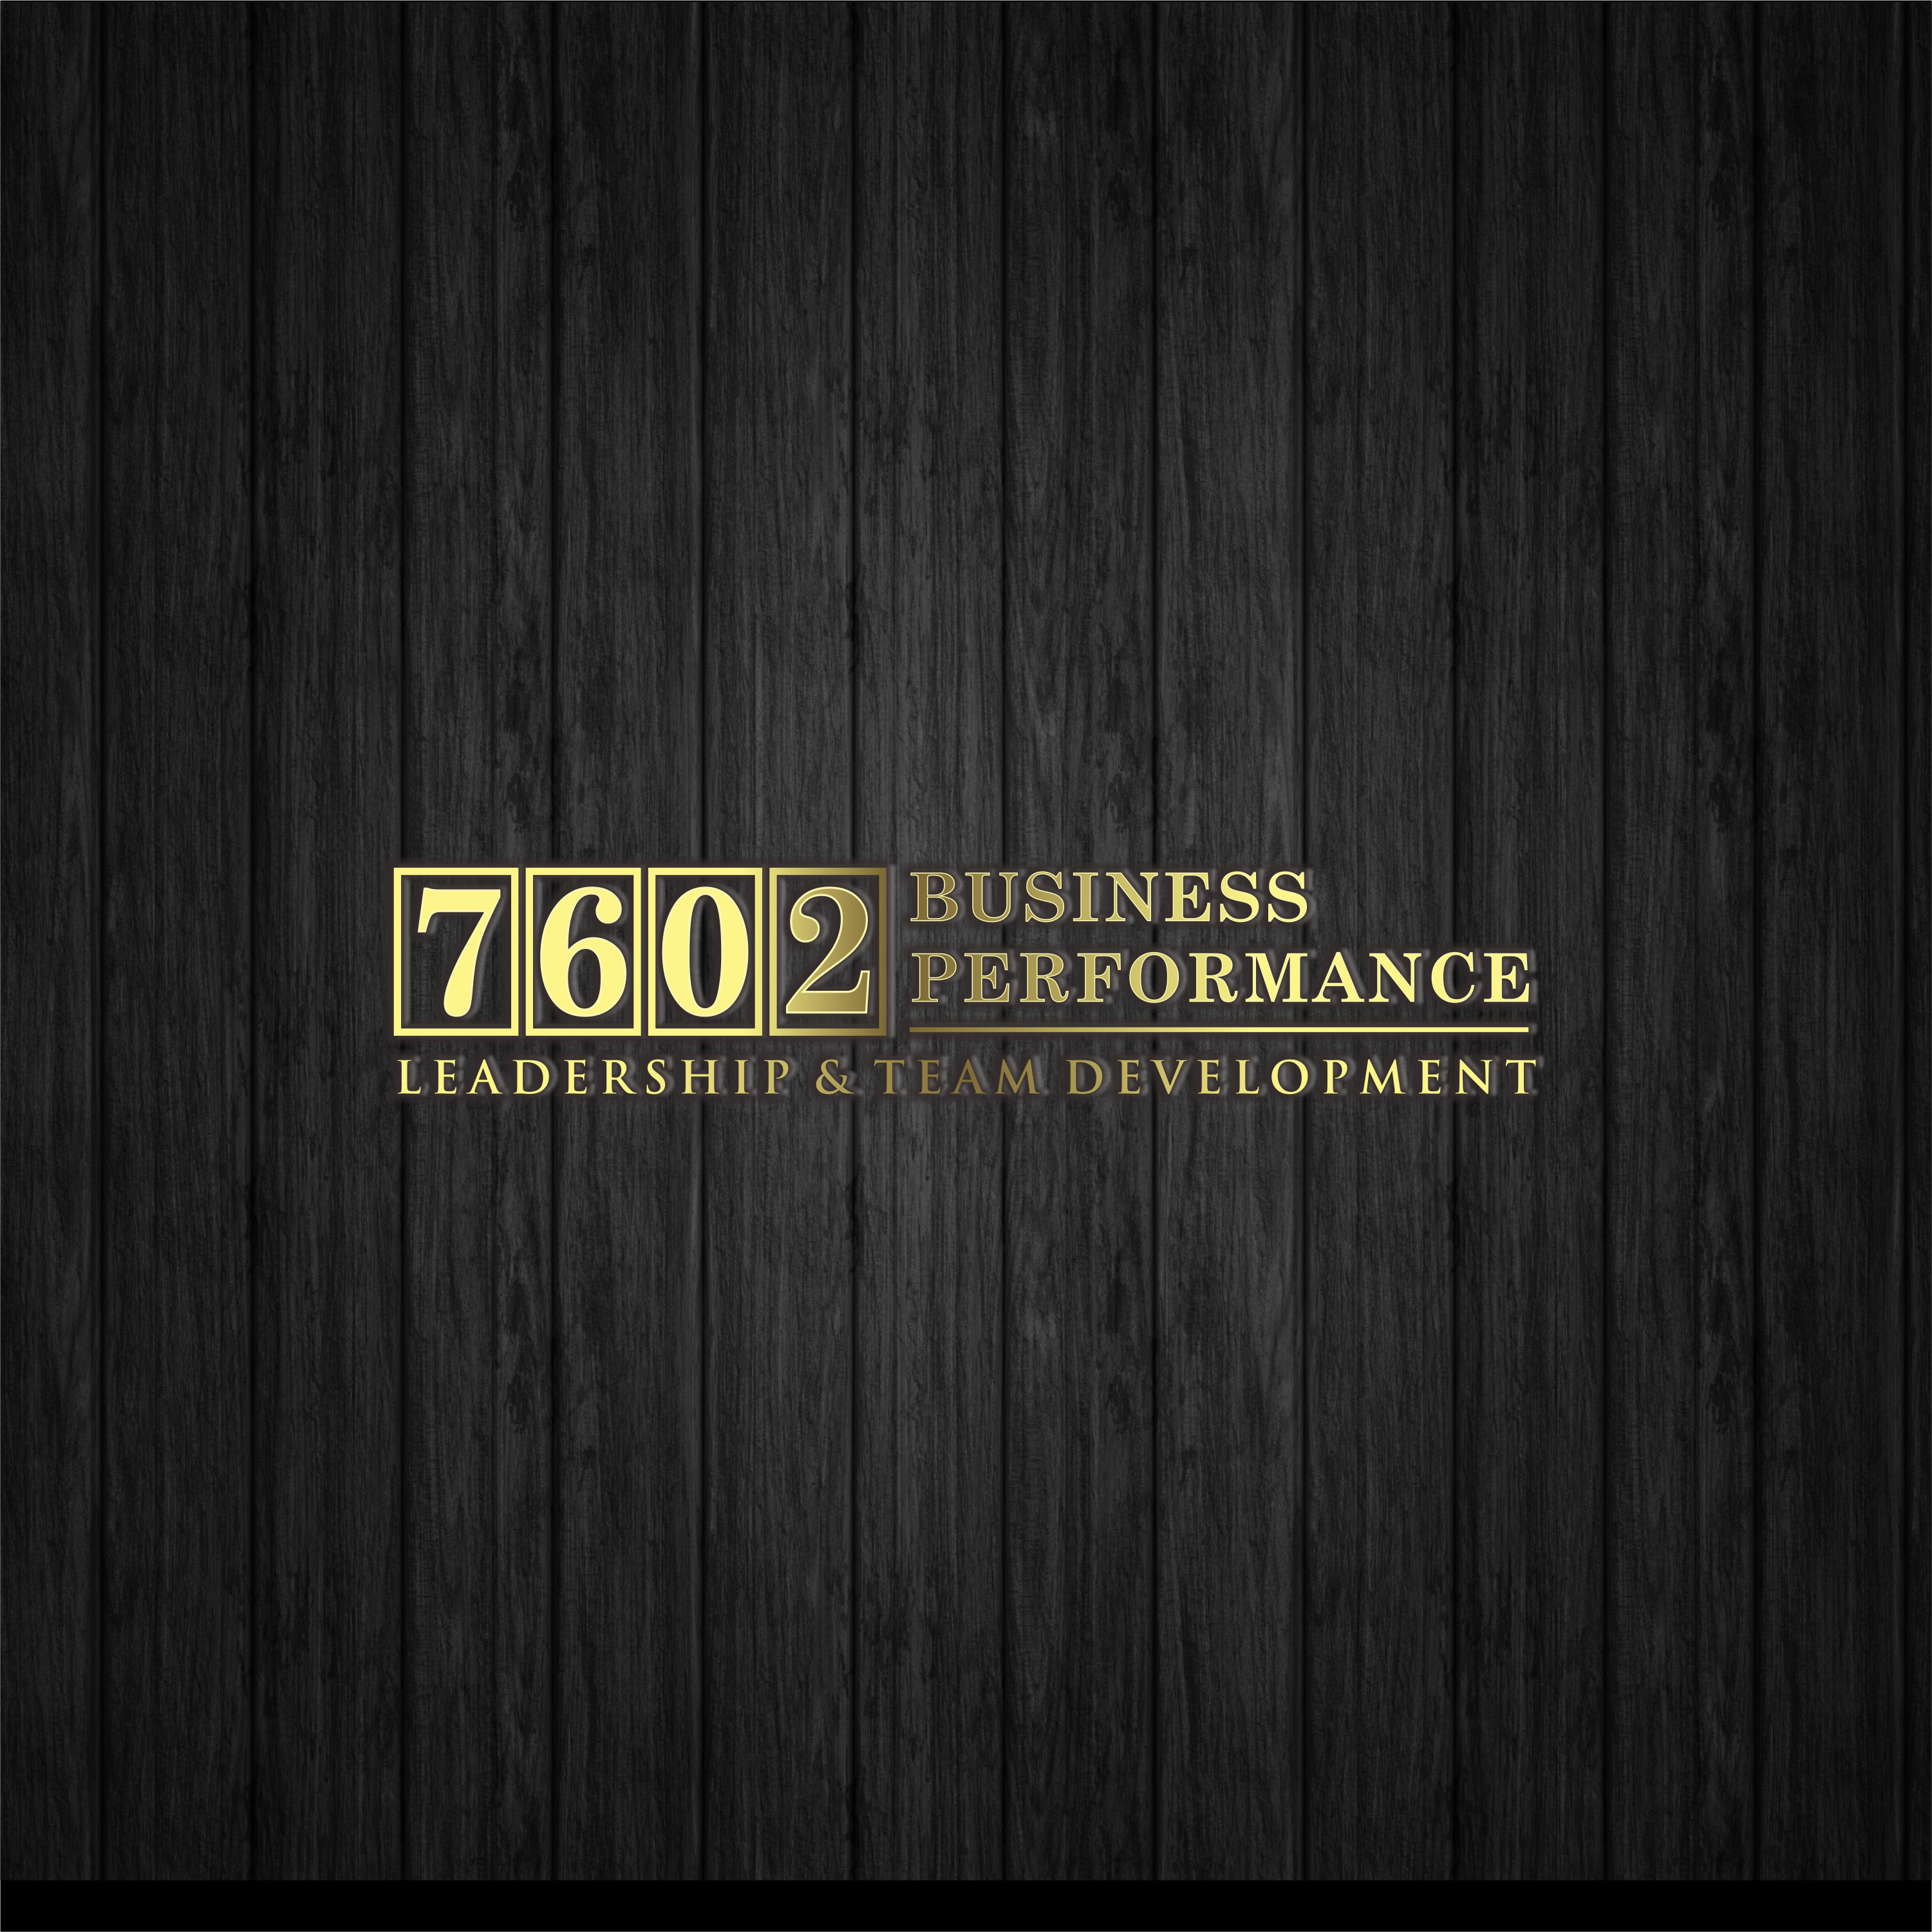 7602 Business Performance